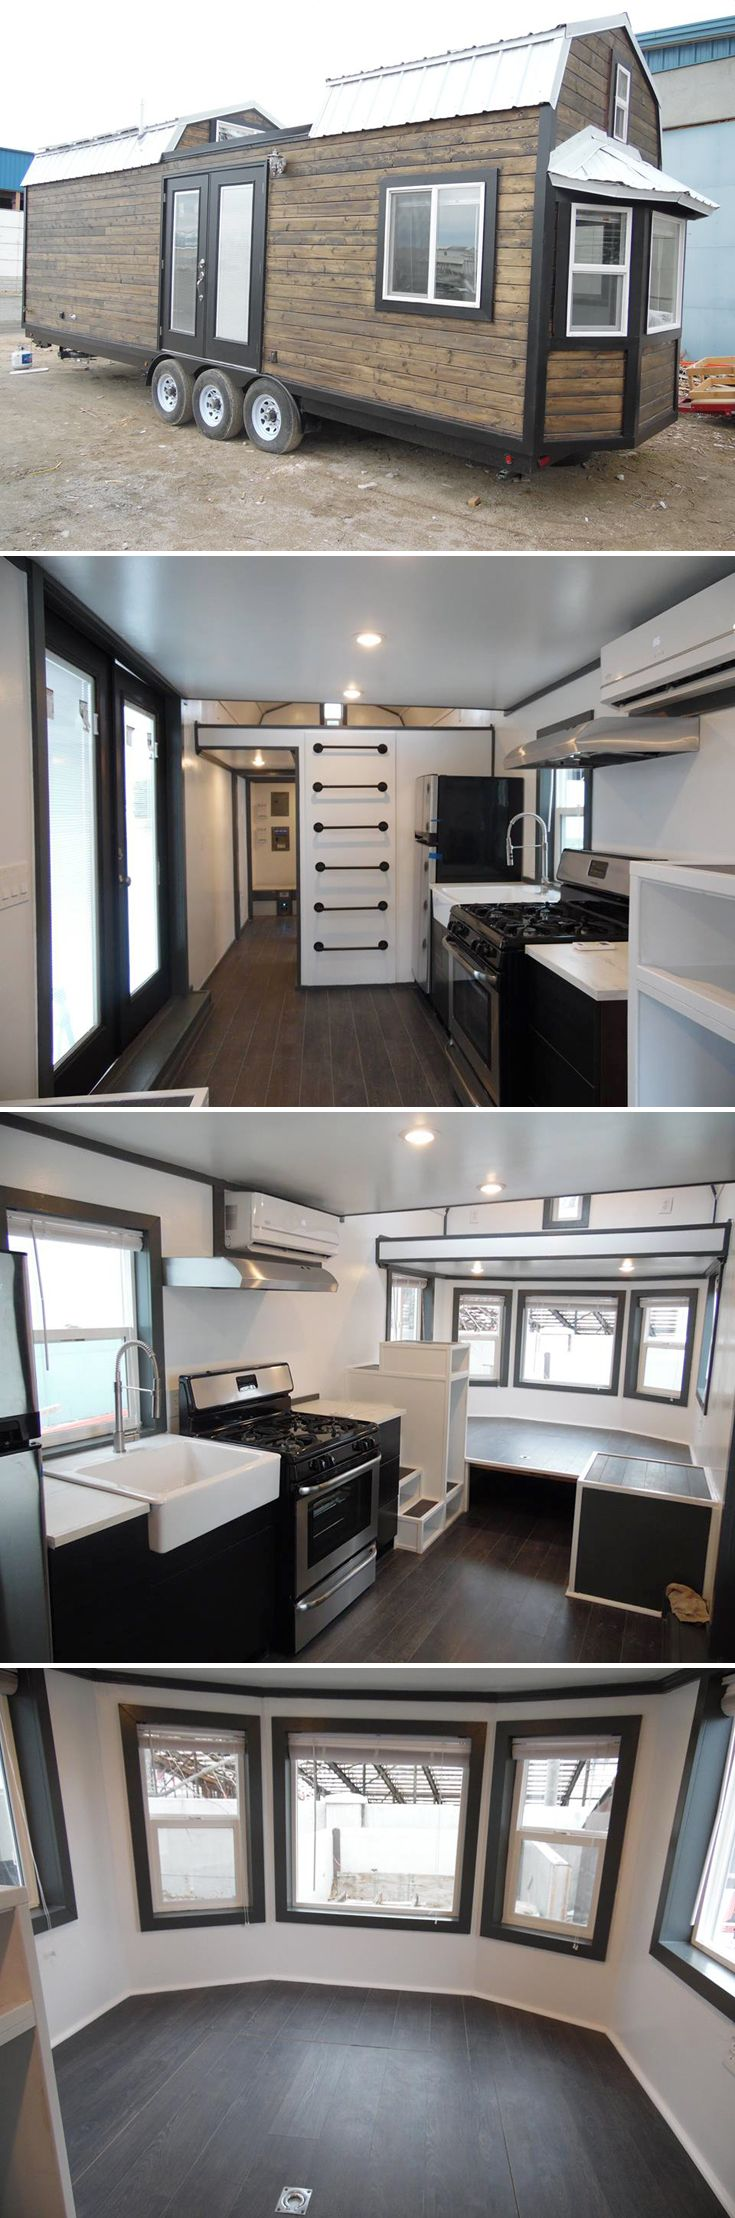 597 Best Tiny Houses Images On Pinterest | Tiny House Living, Tiny Living  And Small Homes